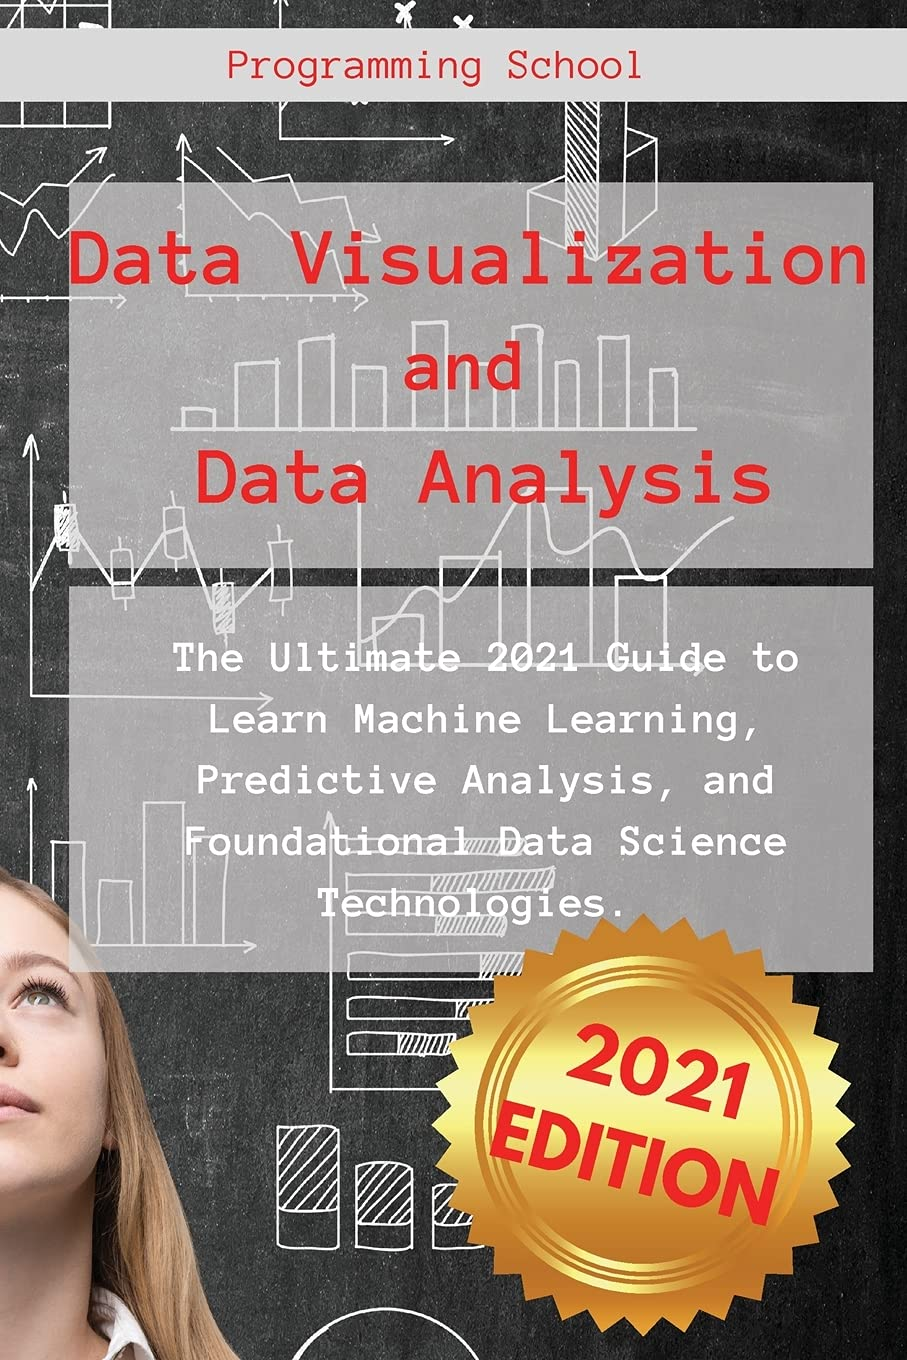 Data Visualization and Data Analysis: The Ultimate 2021 Guide to Learn Machine Learning, Predictive Analysis, and Foundational Data Science Technologies.